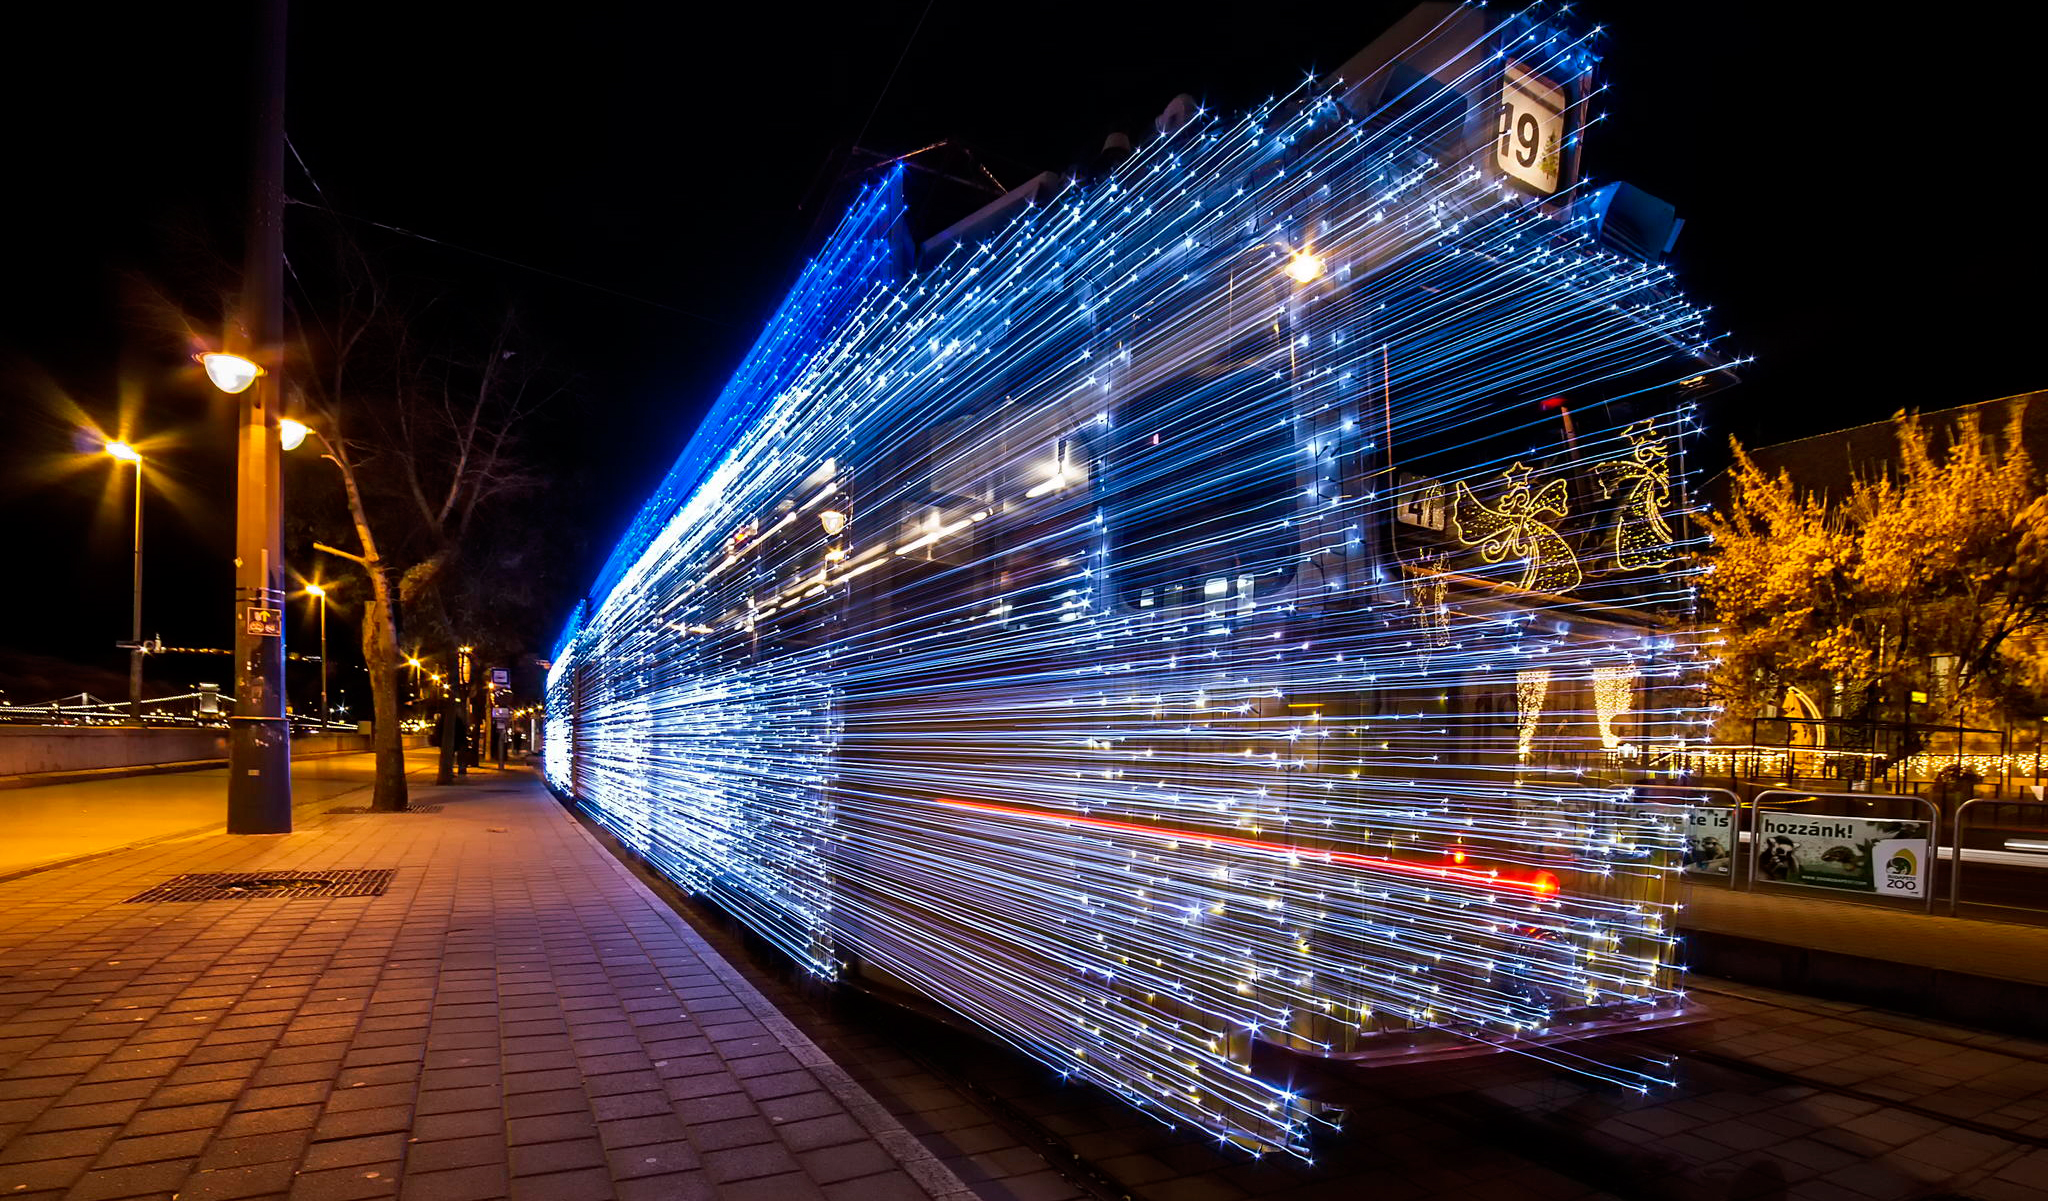 30 000 Led Lights And Long Exposure Turn Budapest Trams Into Time Machines Demilked